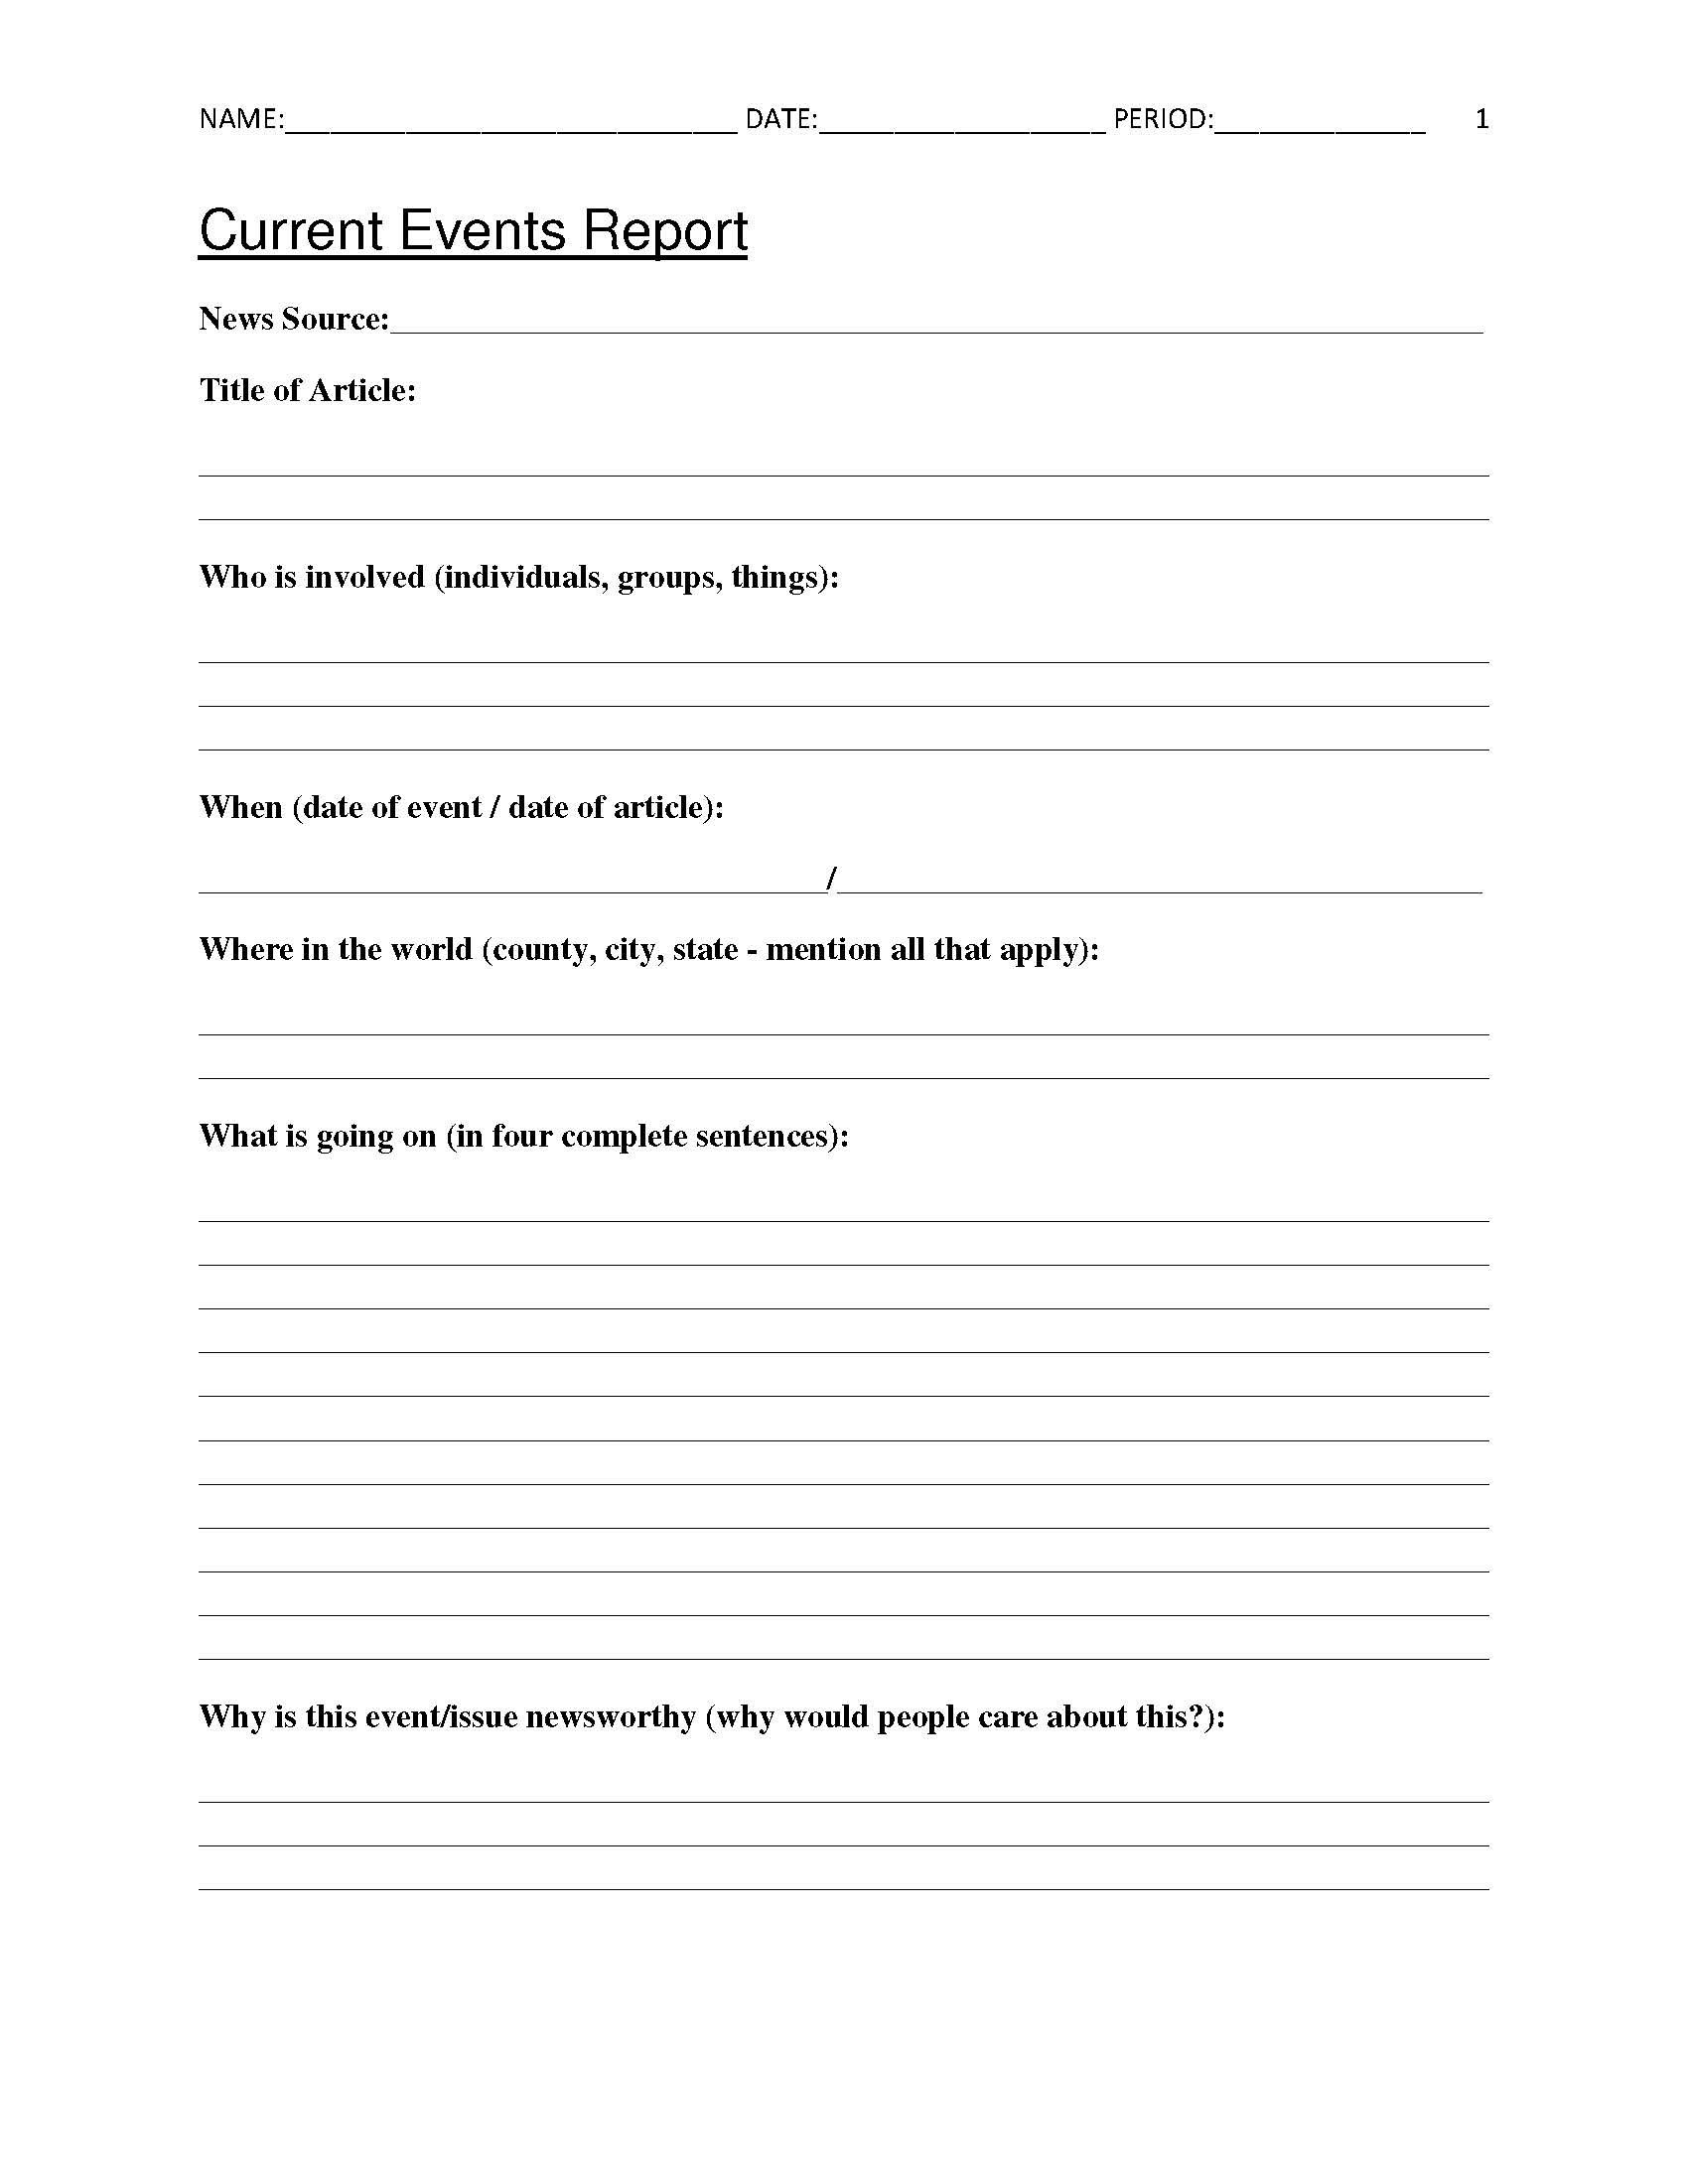 Free Current Events Report Worksheet For Classroom Teachers - Free Printable Social Studies Worksheets For 8Th Grade